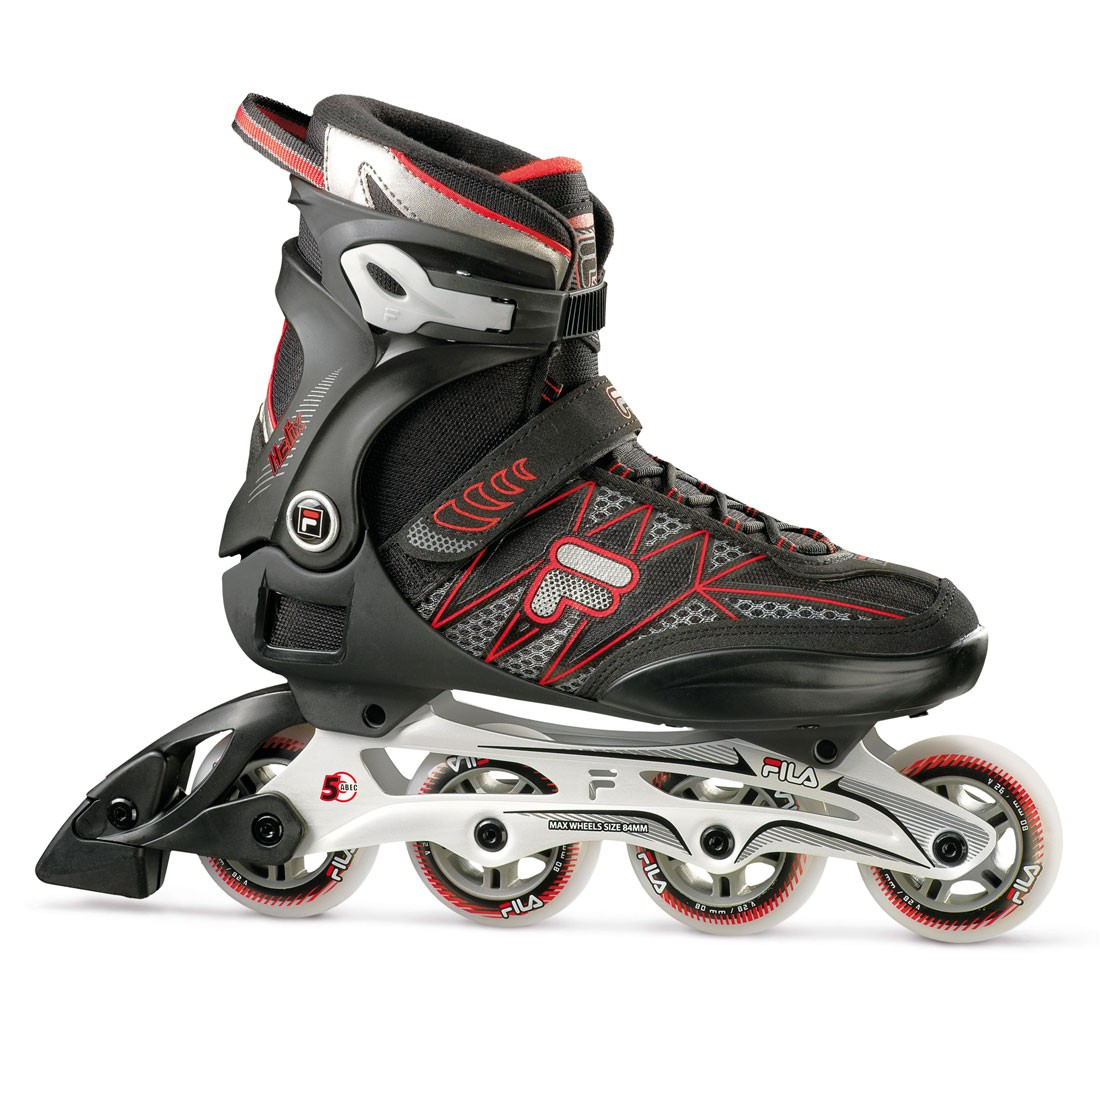 Patins Fila Helix 80mm/82A ABEC 5